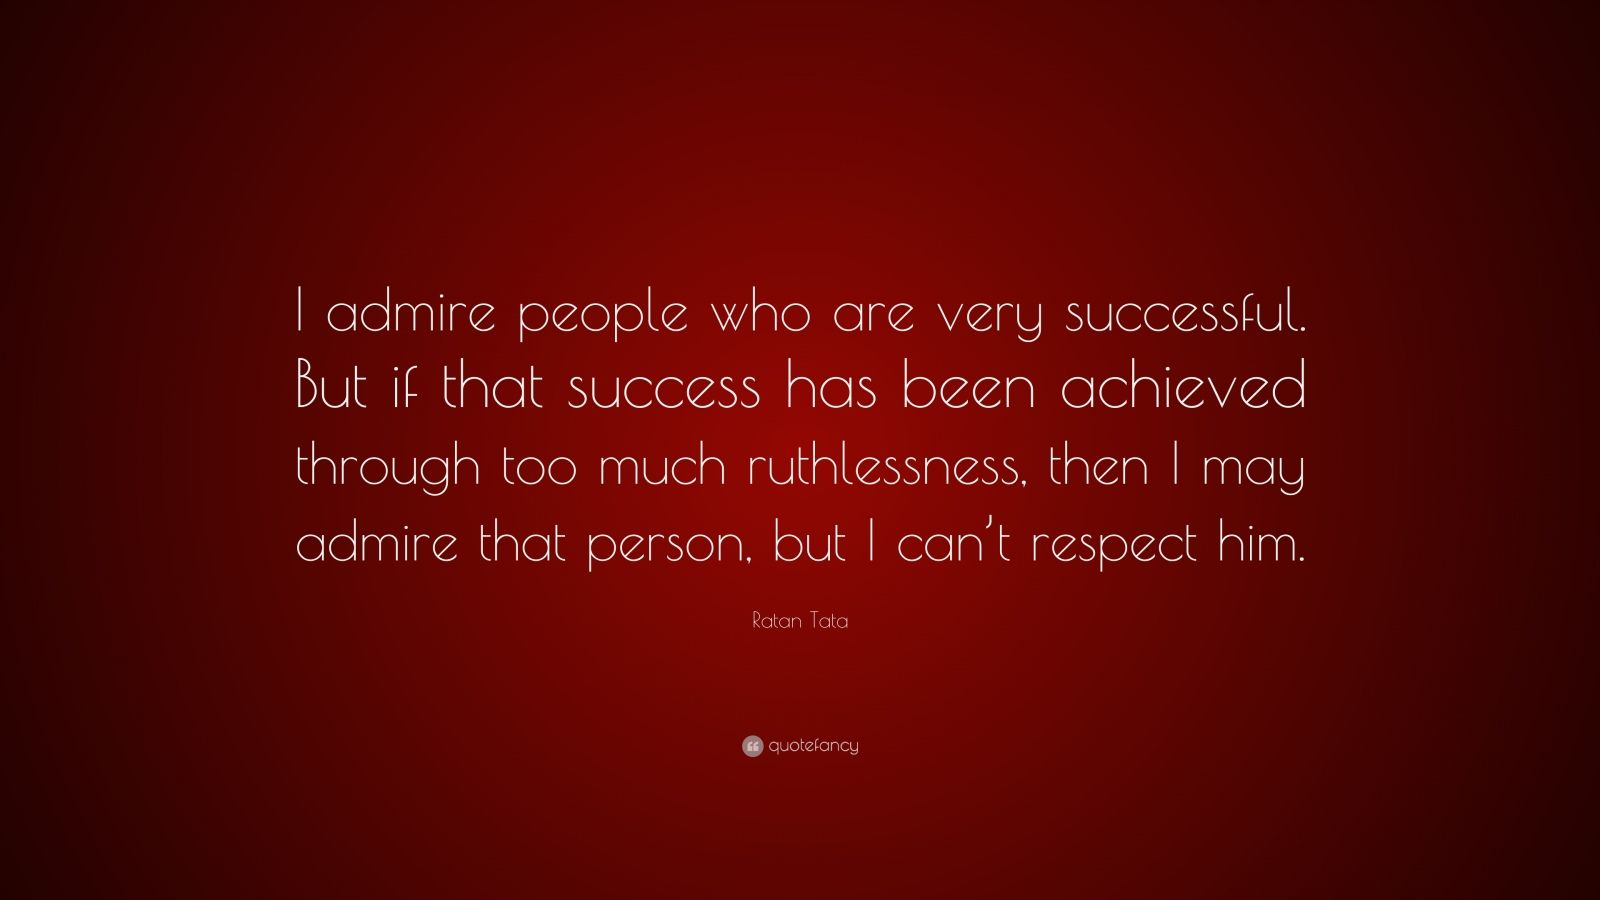 Ratan Tata Quote I Admire People Who Are Very Successful But If That Success Has Been